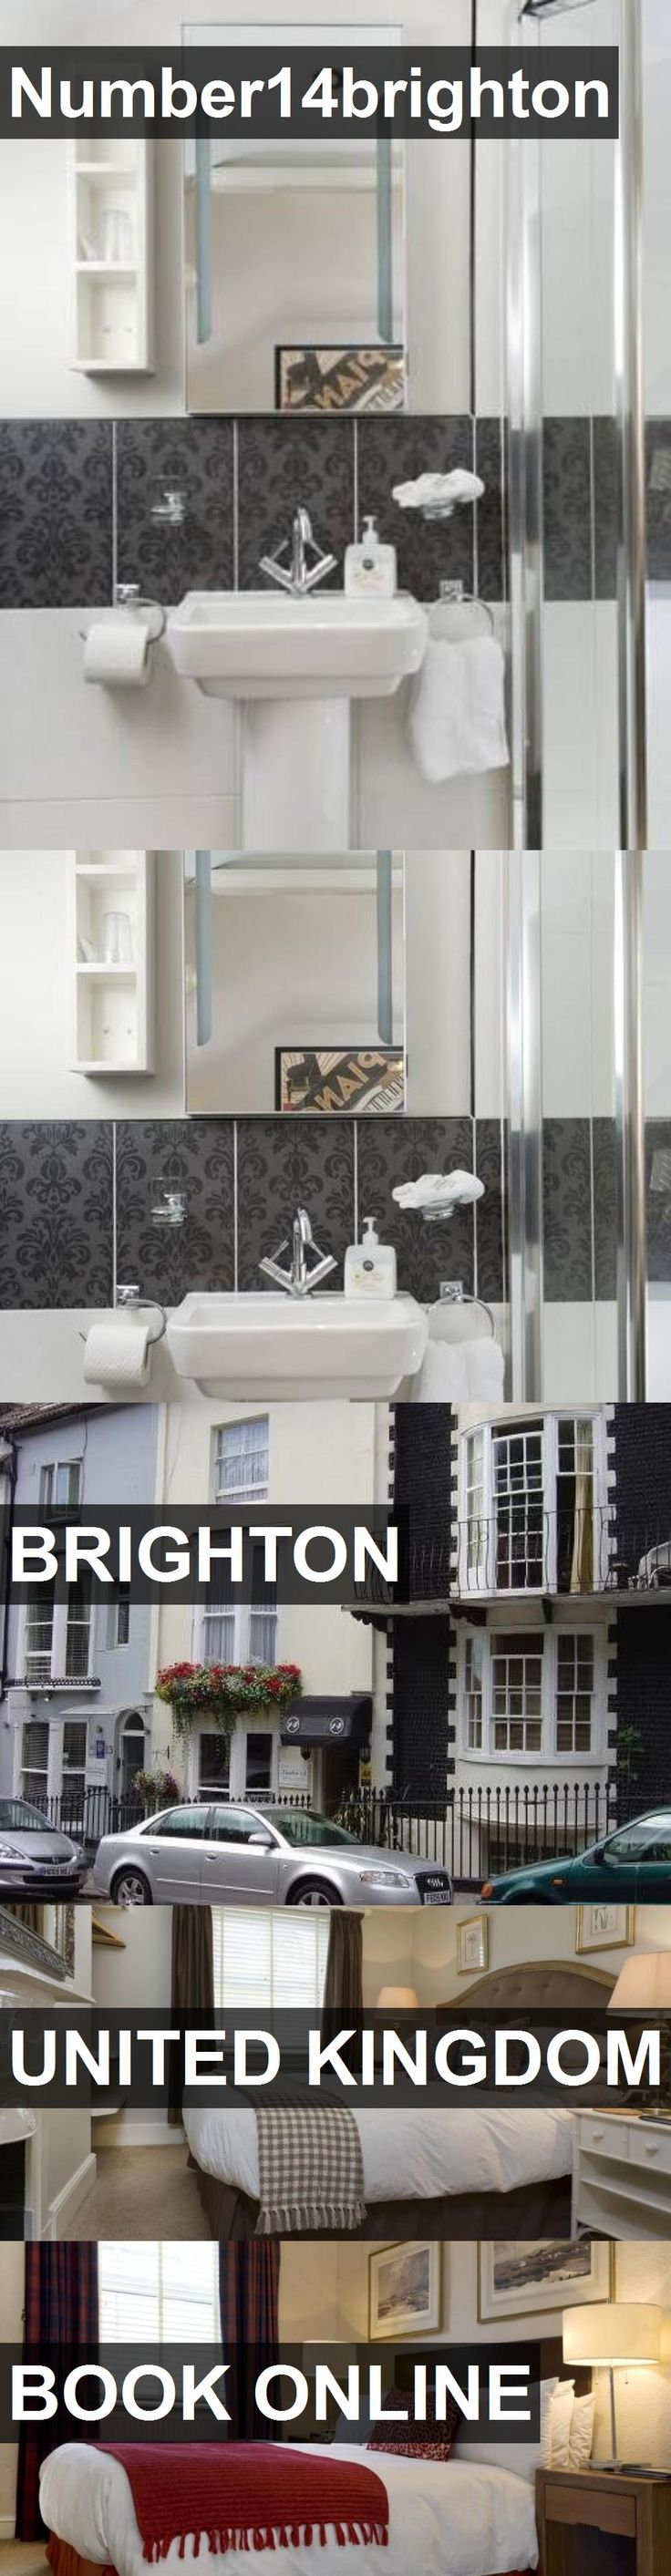 Hotel Number14brighton in Brighton, United Kingdom. For more information, photos, reviews and best prices please follow the link. #UnitedKingdom #Brighton #Number14brighton #hotel #travel #vacation